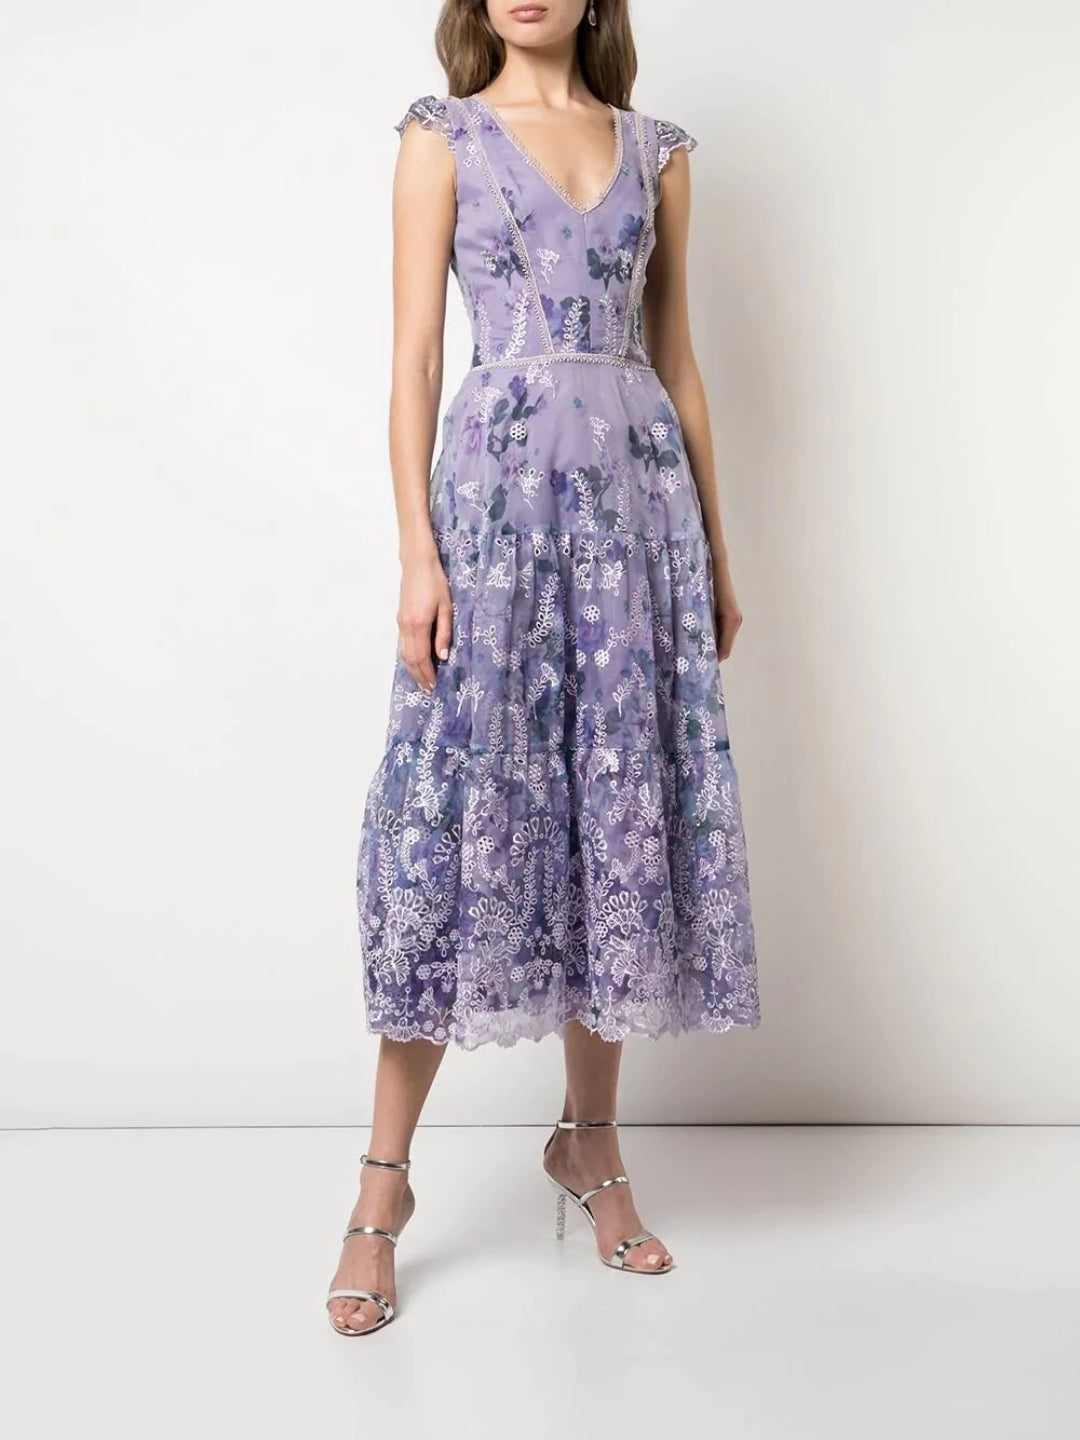 Cap Sleeve Eyelet Cocktail Dress